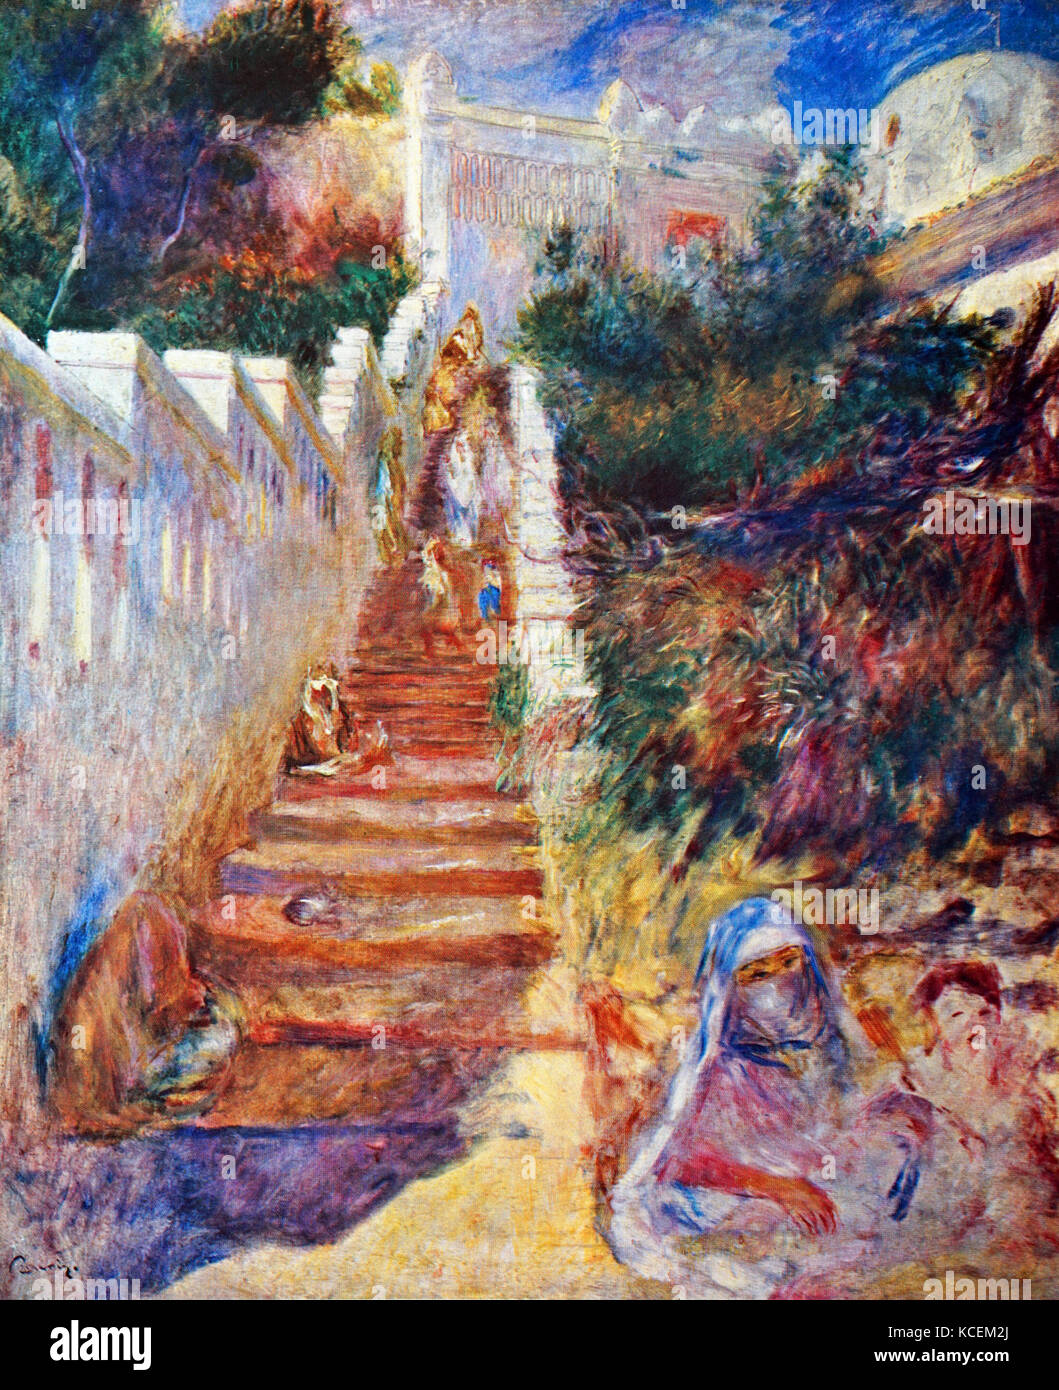 Painting titled 'The Stairway, Algiers' by Pierre-Auguste Renoir (1841-1919) a French artist of the Impressionist - Stock Image